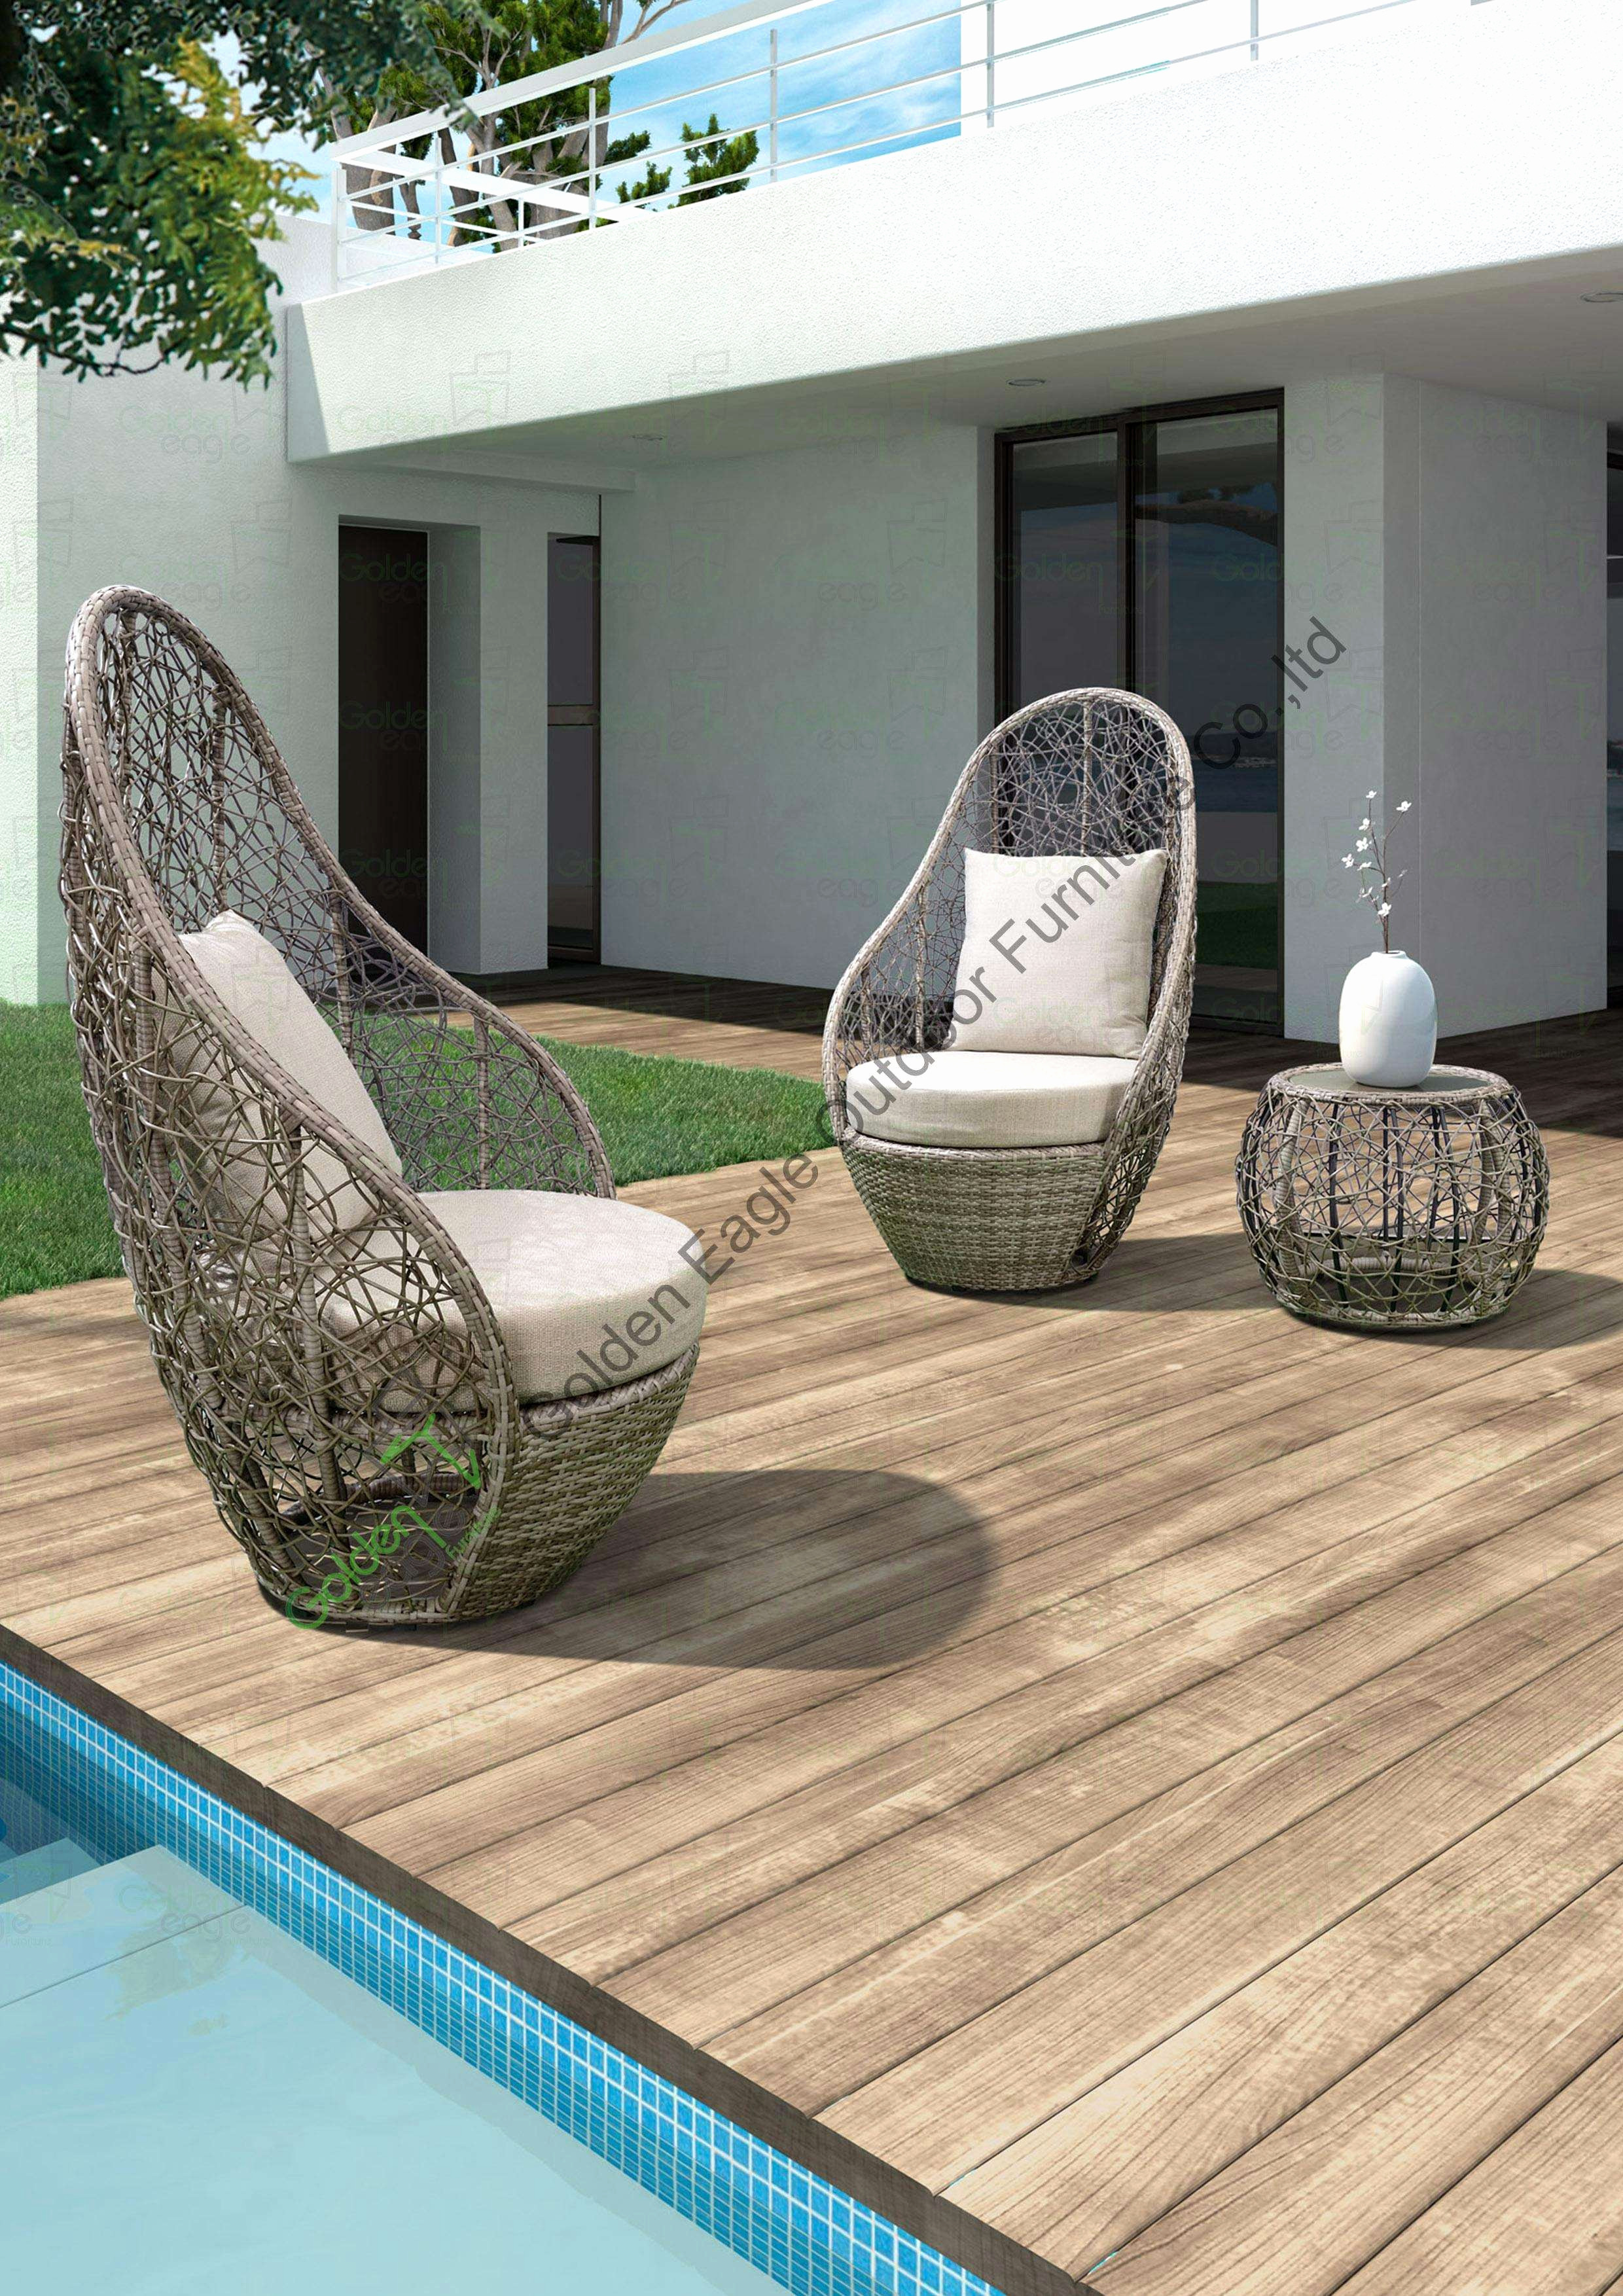 hardwood floor cost per square foot calculator of square footage and flooring cost calculator wikizie co regarding wood flooring and installation costs luxury what kind od or flooring calculator estimate installation cost for